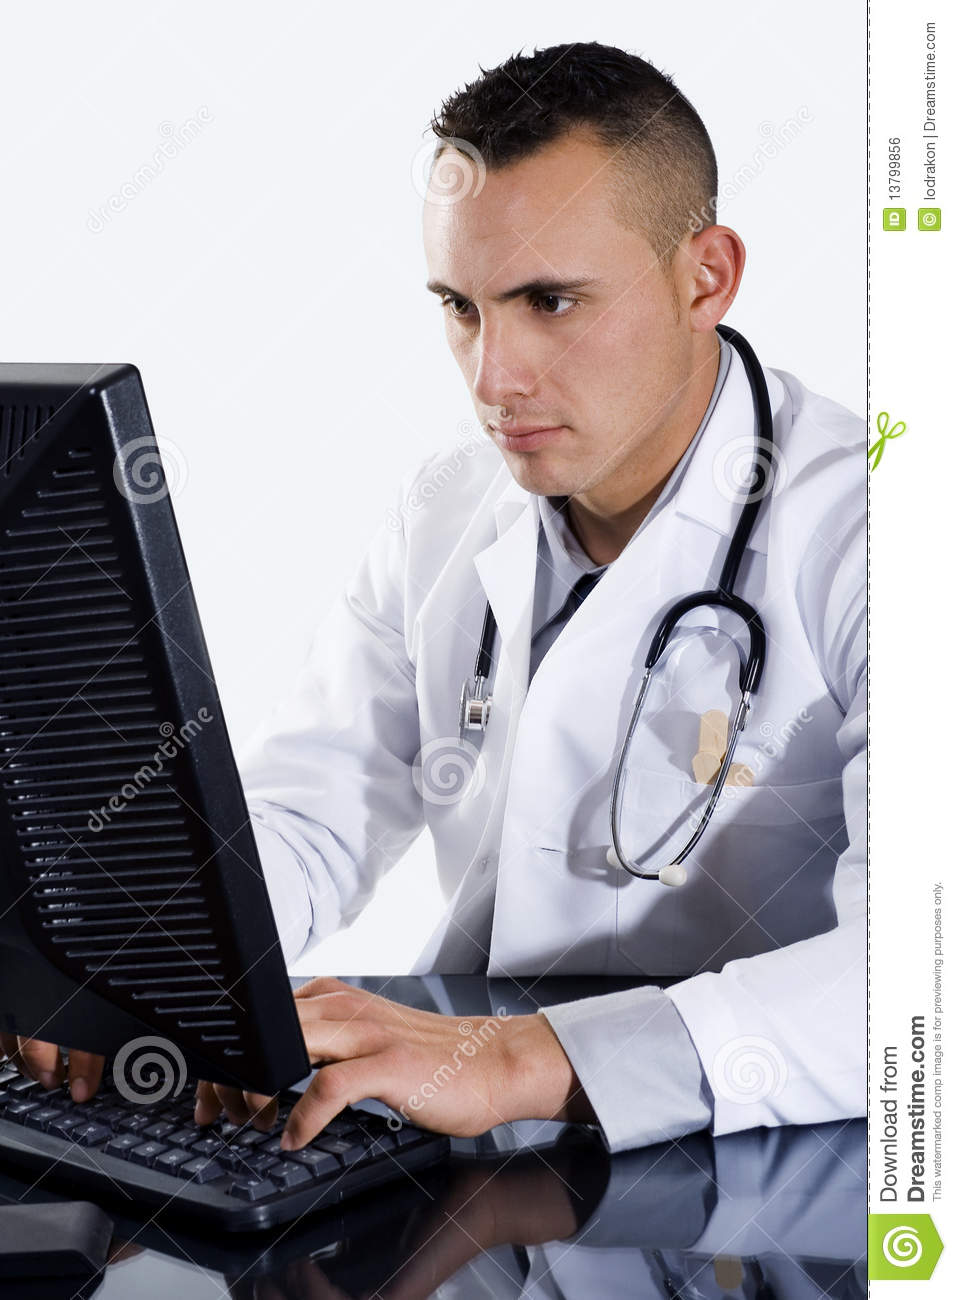 Male Doctor Typing On Computer Stock Photo Image 13799856